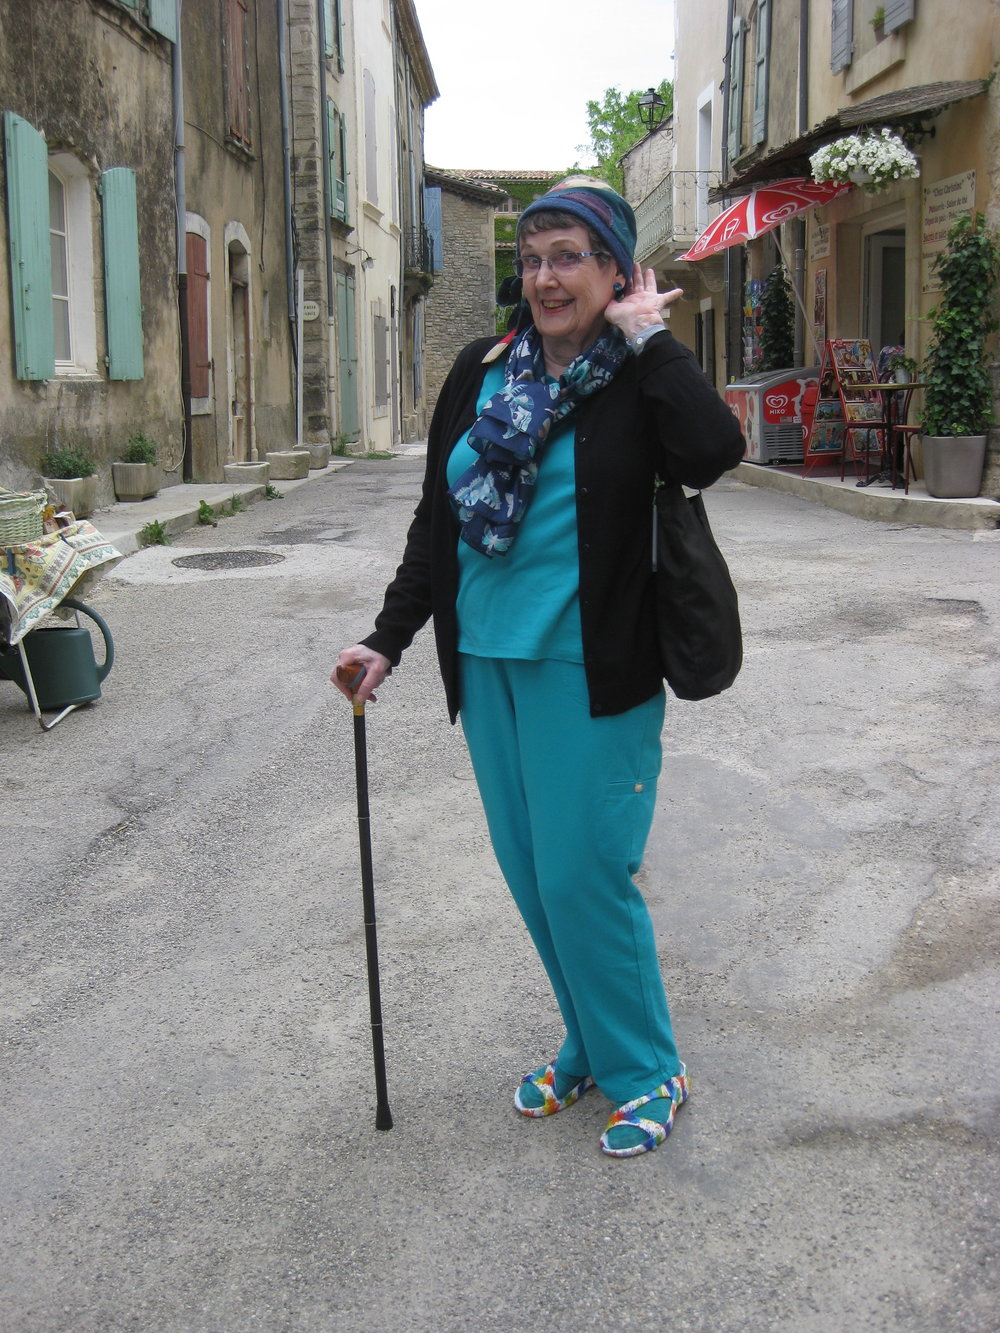 Ann Holland in Saignon, France